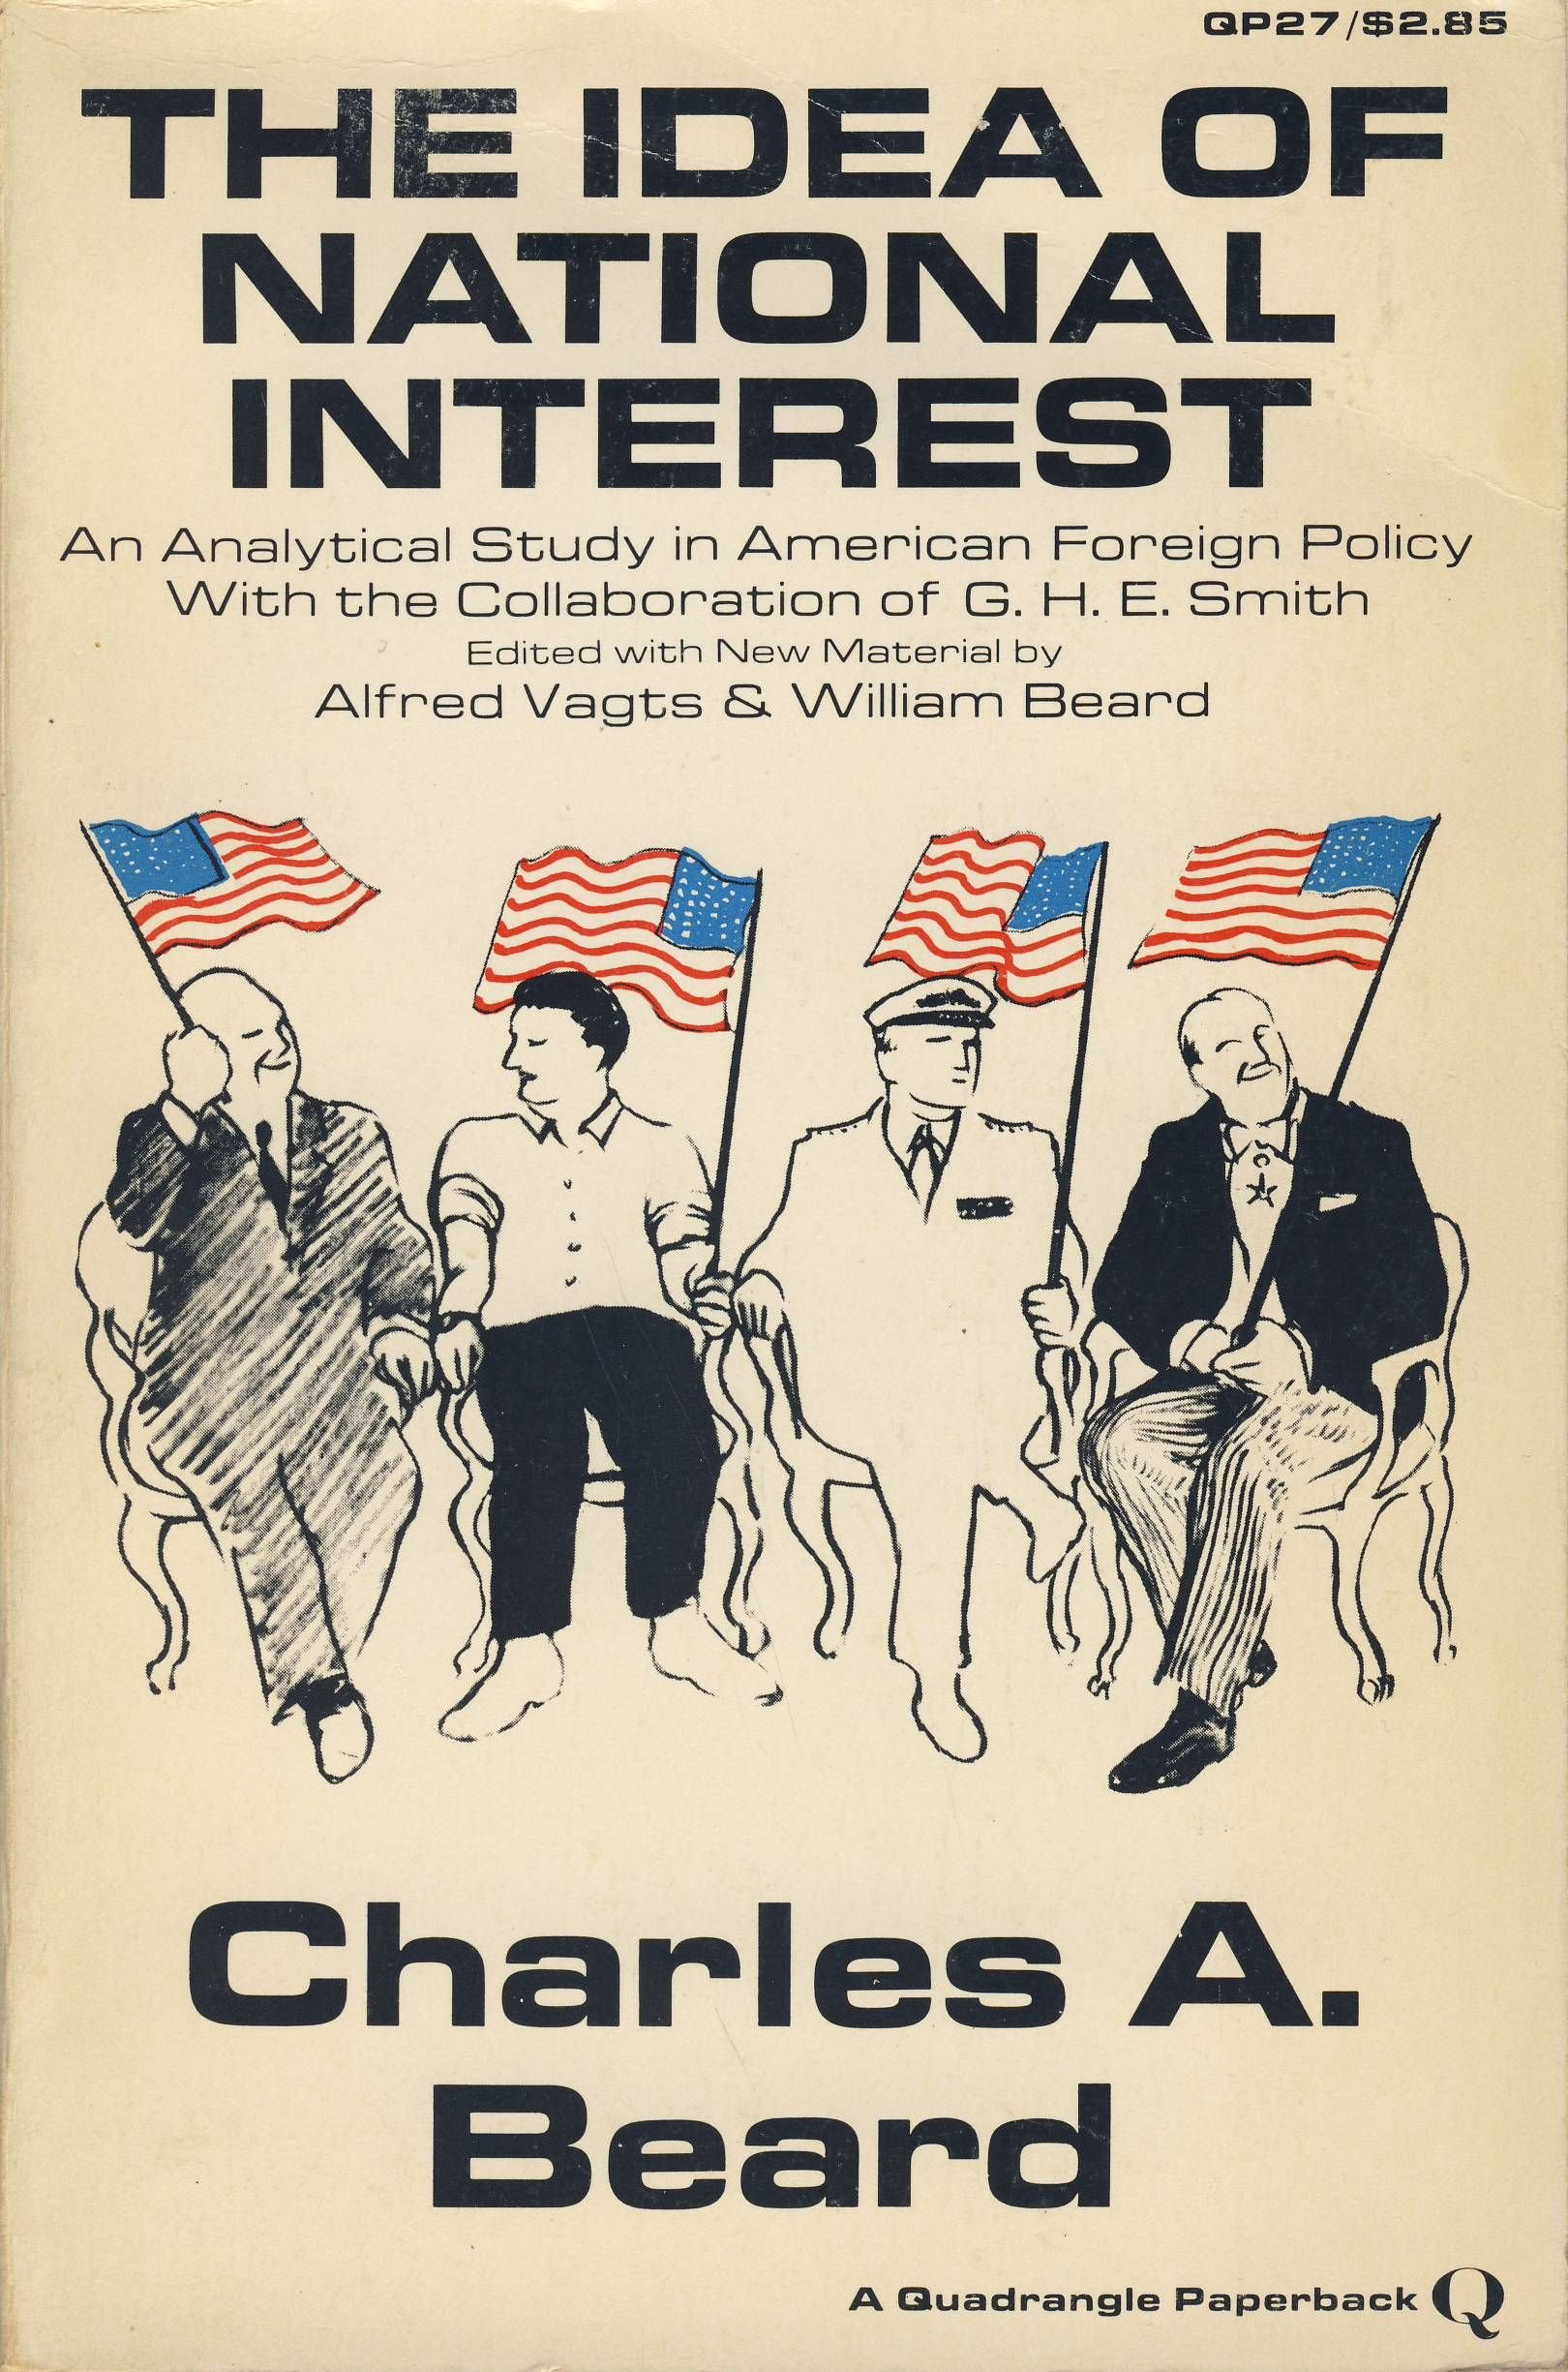 The Idea Of National Interest: An Analytical Study In American Foreign Policy